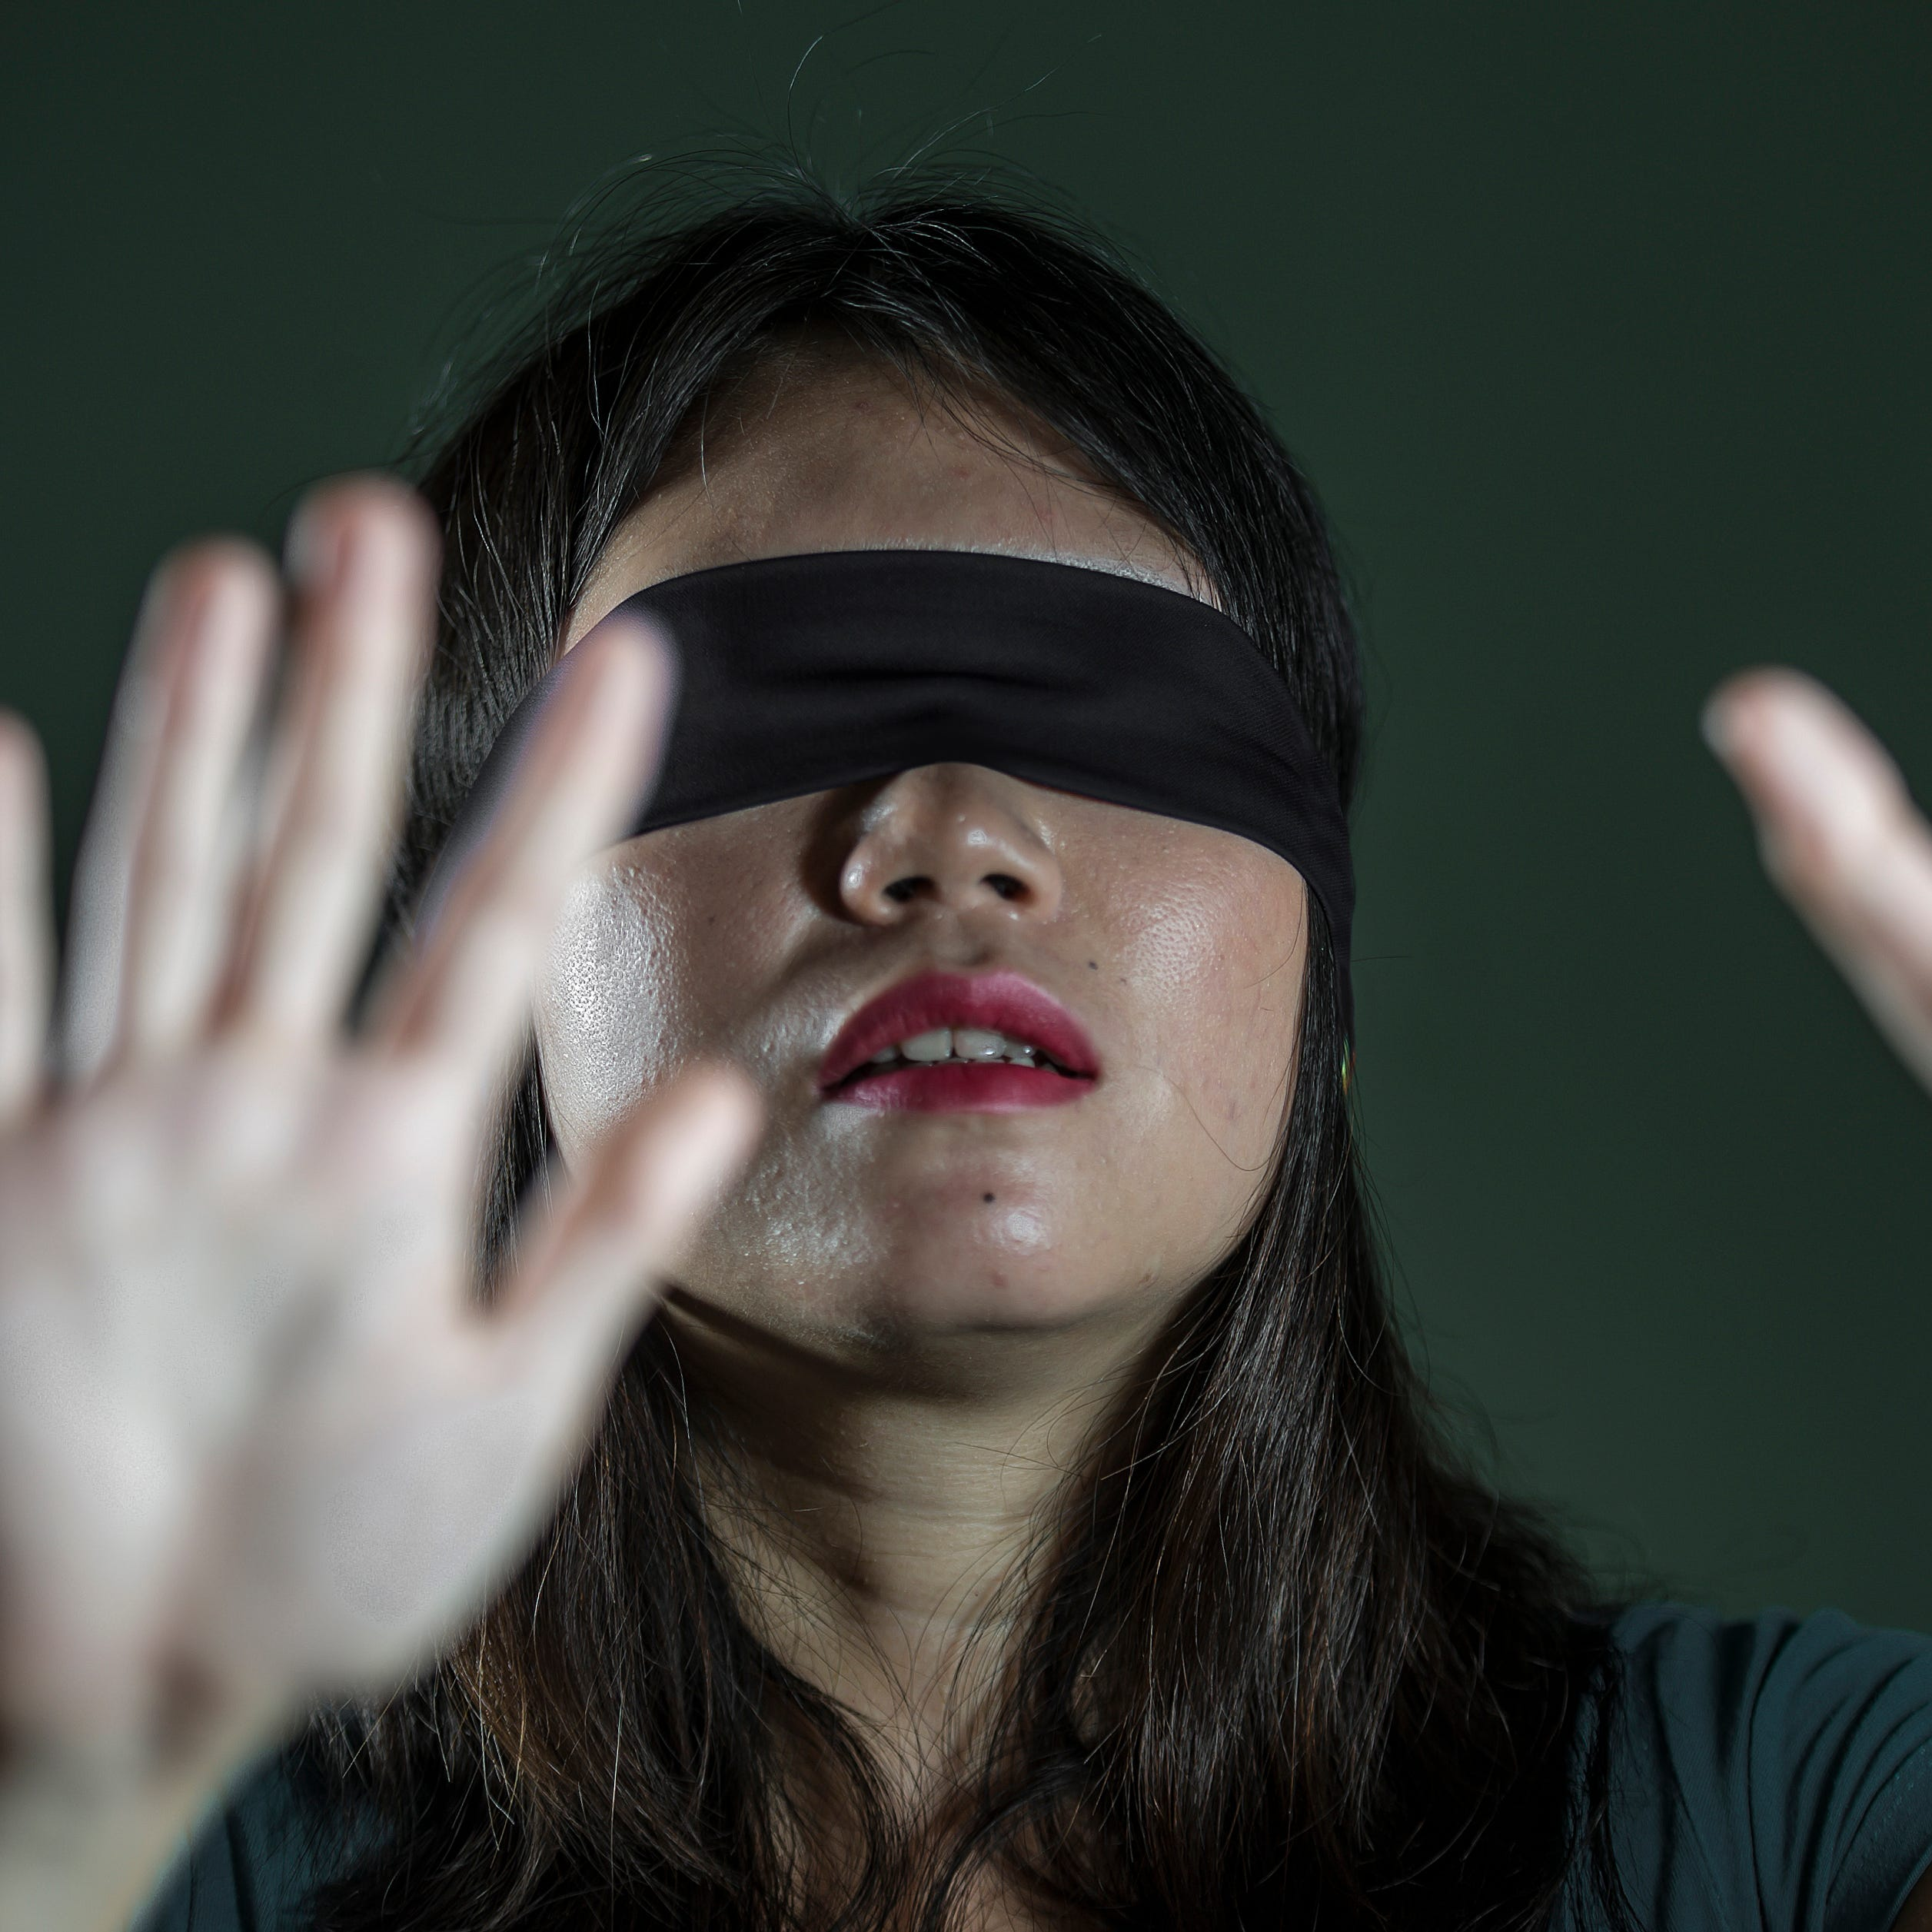 YouTube, like Netflix before it, doesn't want people walking around blindfolded and getting hurt. So, it's banning videos showing dangerous challenges like the Bird Box Challenge.